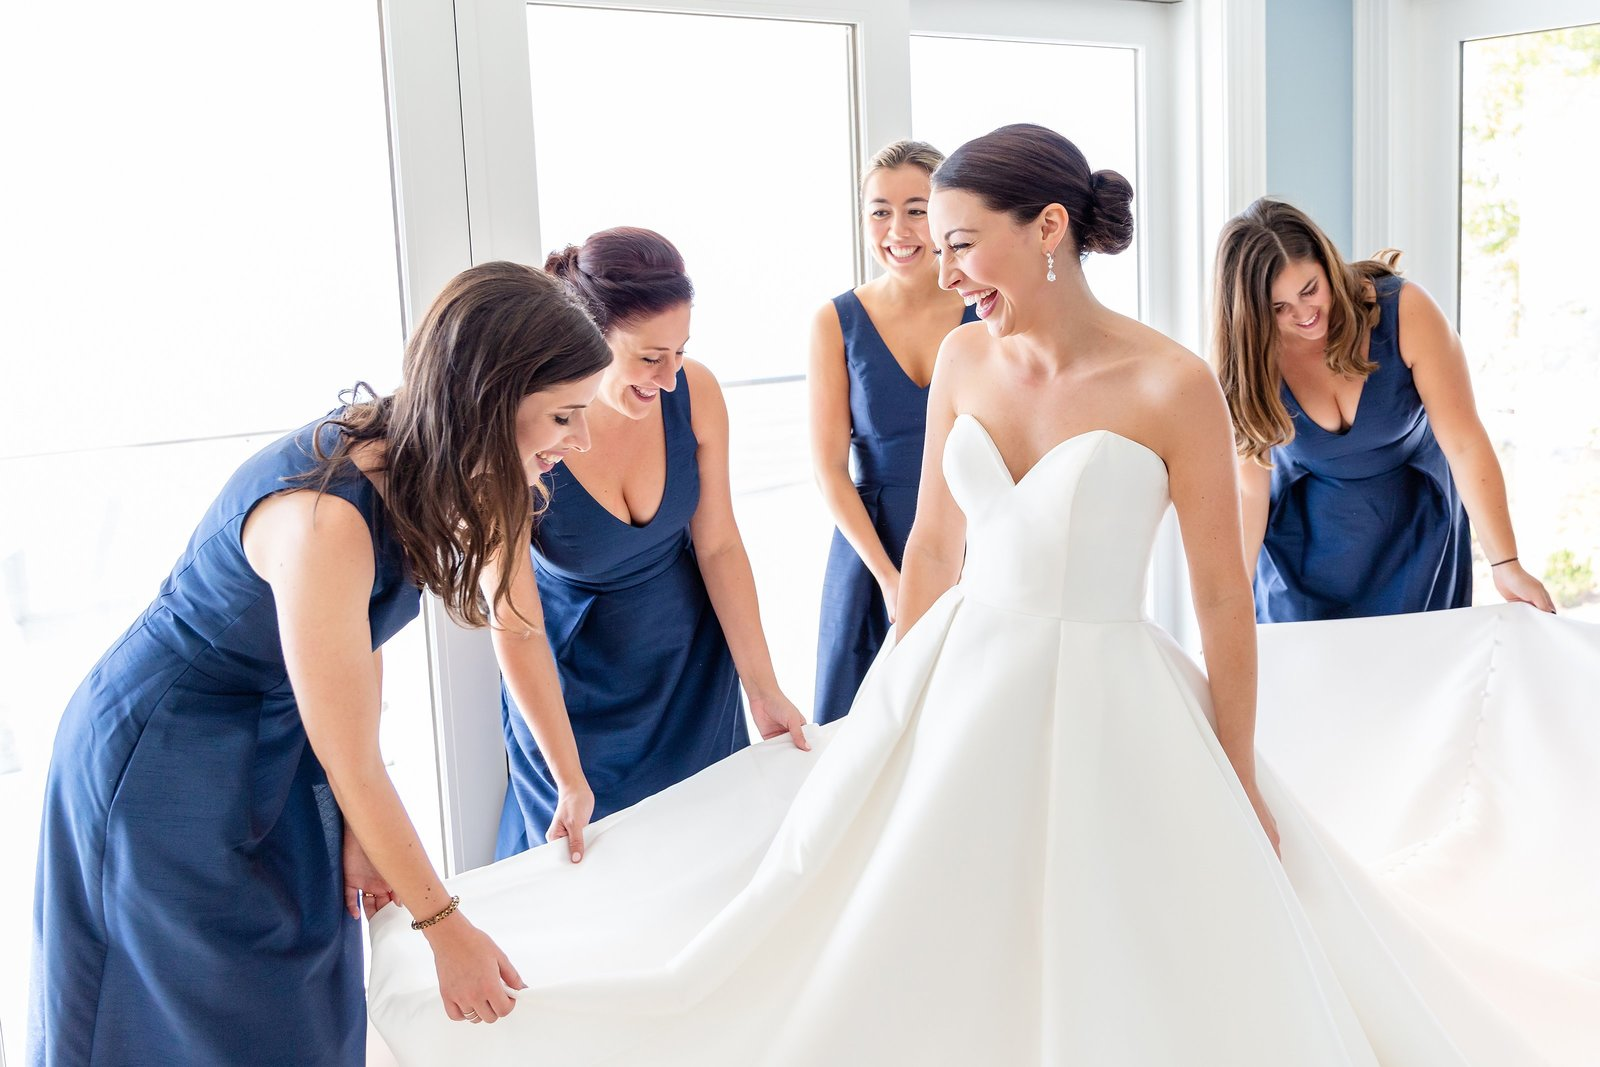 Bride-surrounded-by-her-bridesmaids-fixing-her-dress-and-making-sure-she-looks-her-best